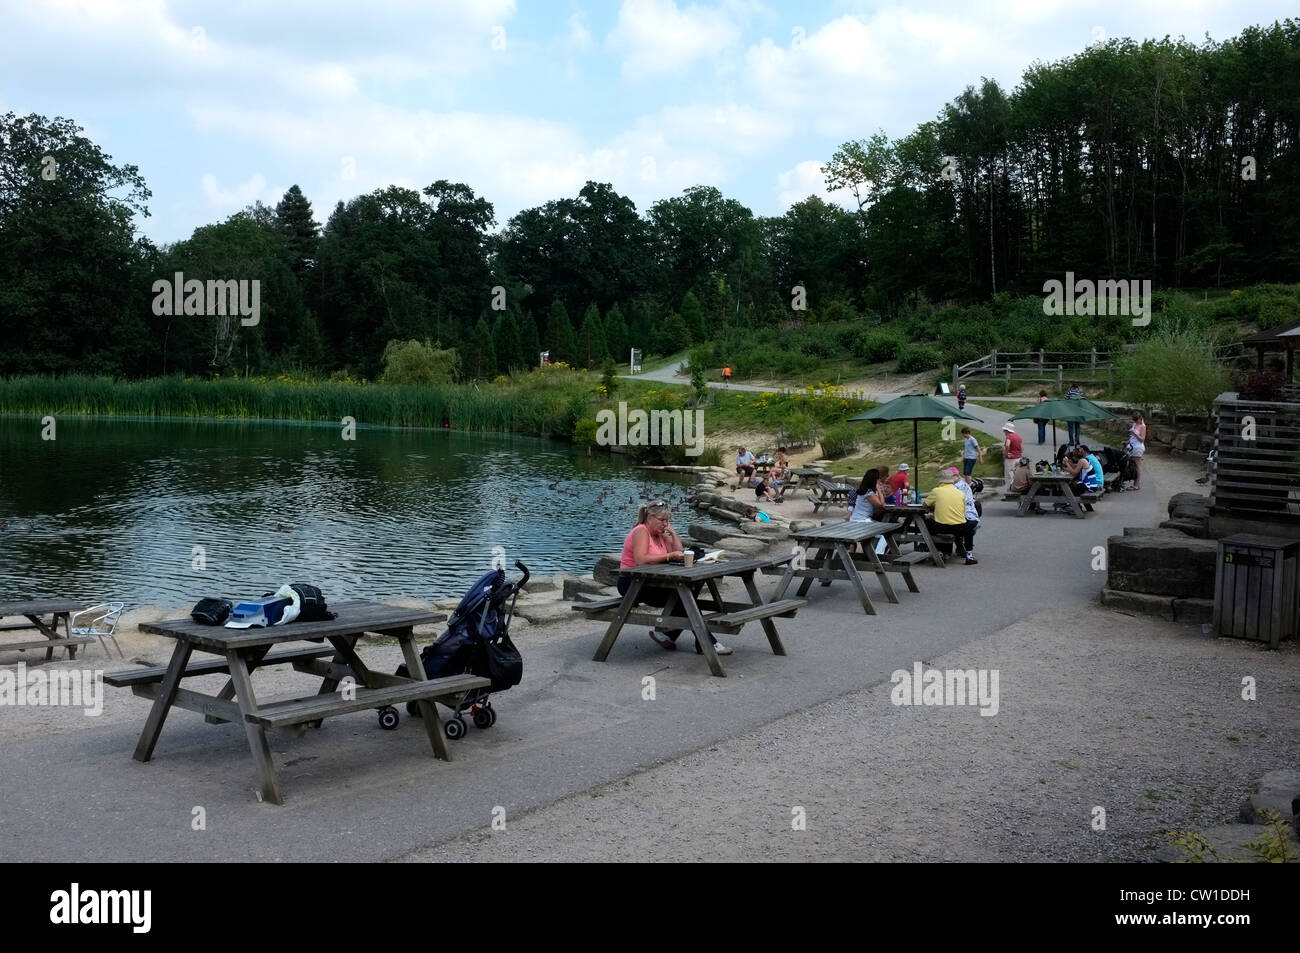 bedgebury national pinetum and forest goudhurst kent uk 2012 - Stock Image